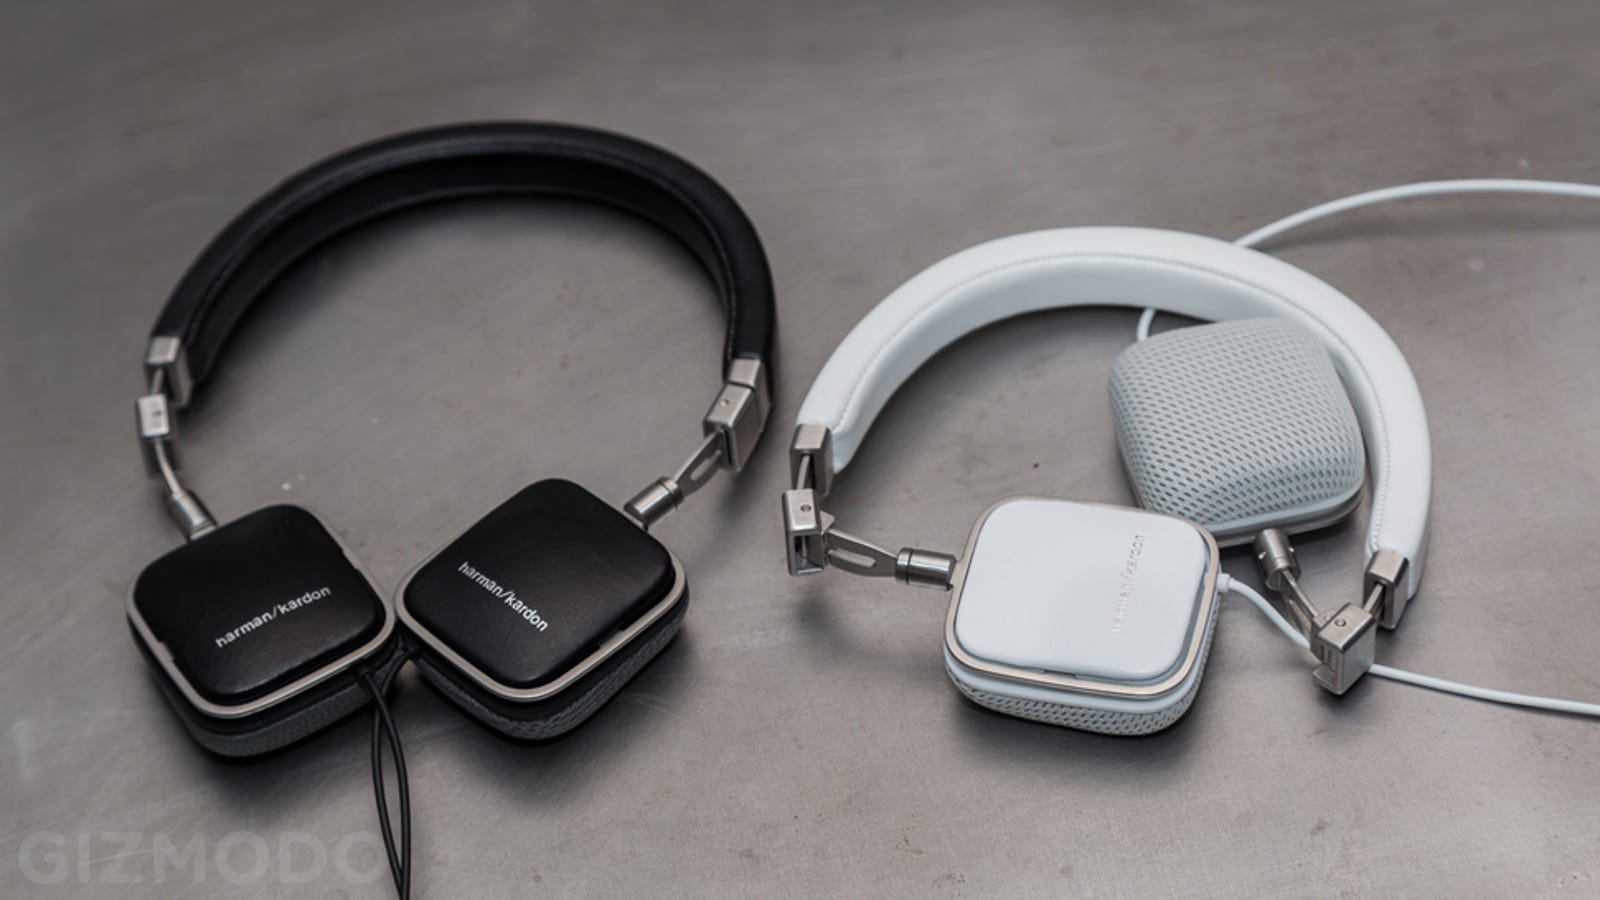 noise isolating earbuds bose - Harman Kardon SoHo Headphones: Same Great Sound, New Portable Package